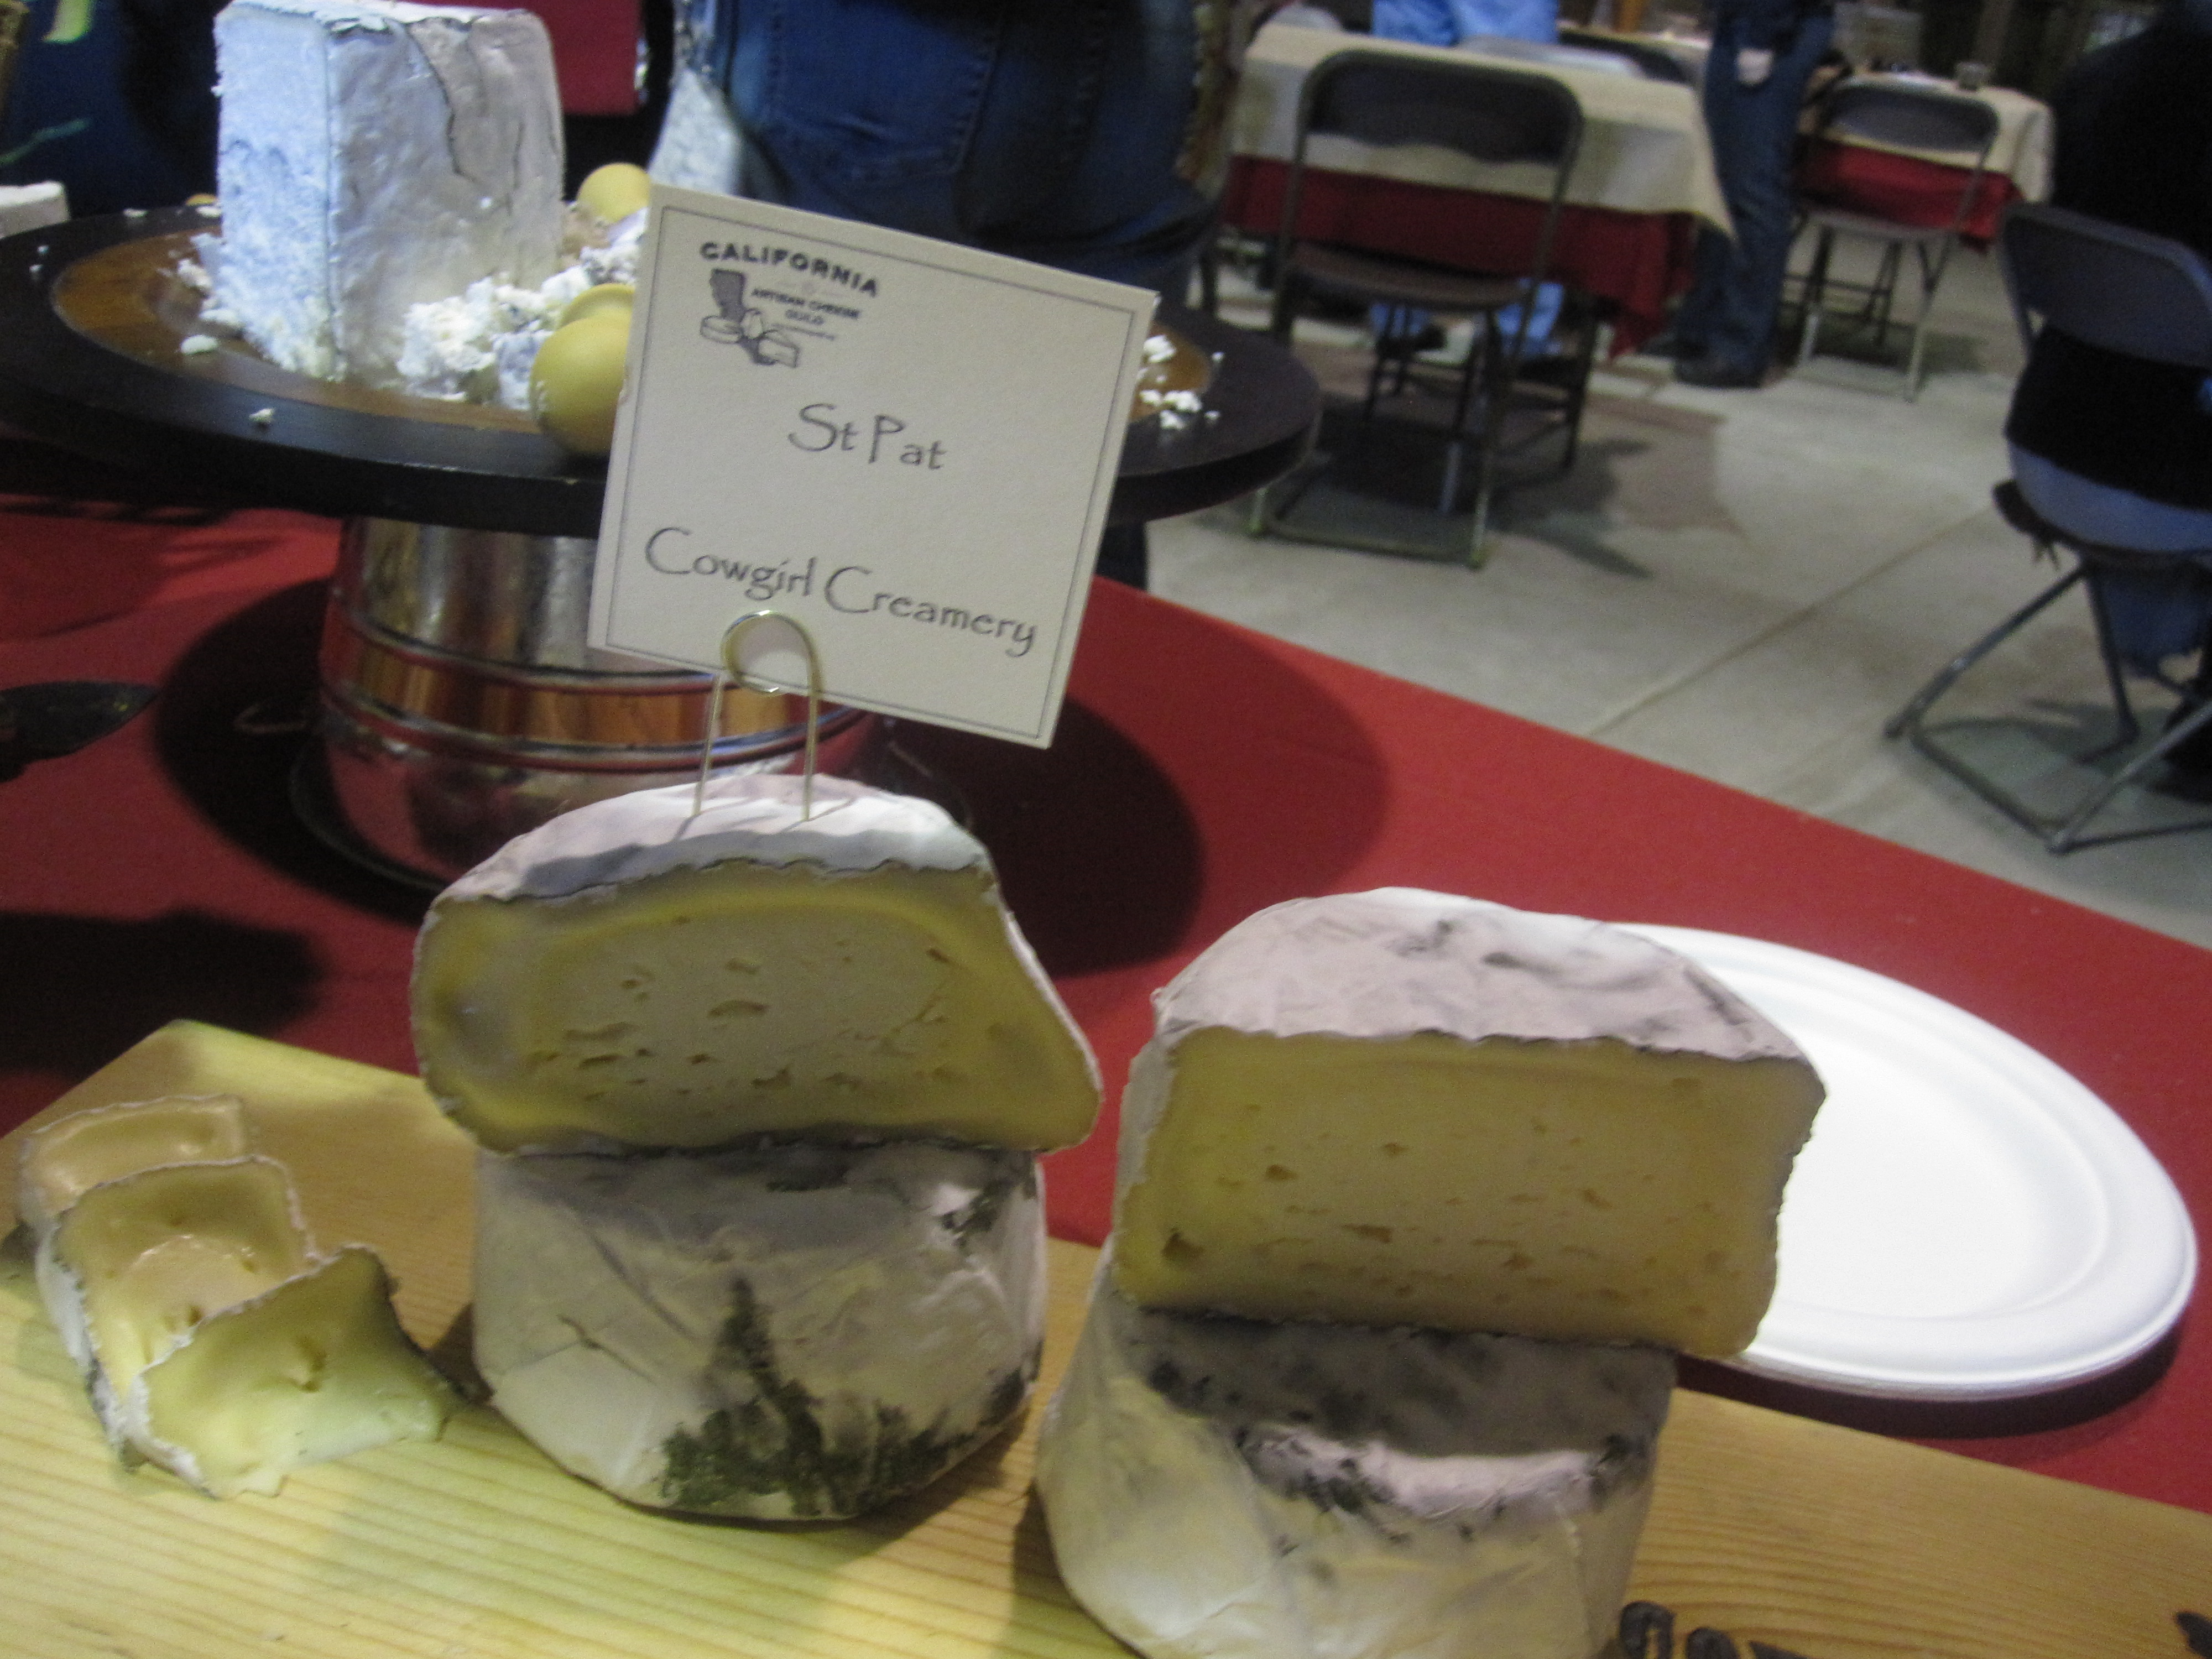 Now on to the star of the show: the cheese! The Cowgirls were there sharing their seasonal St Pat.